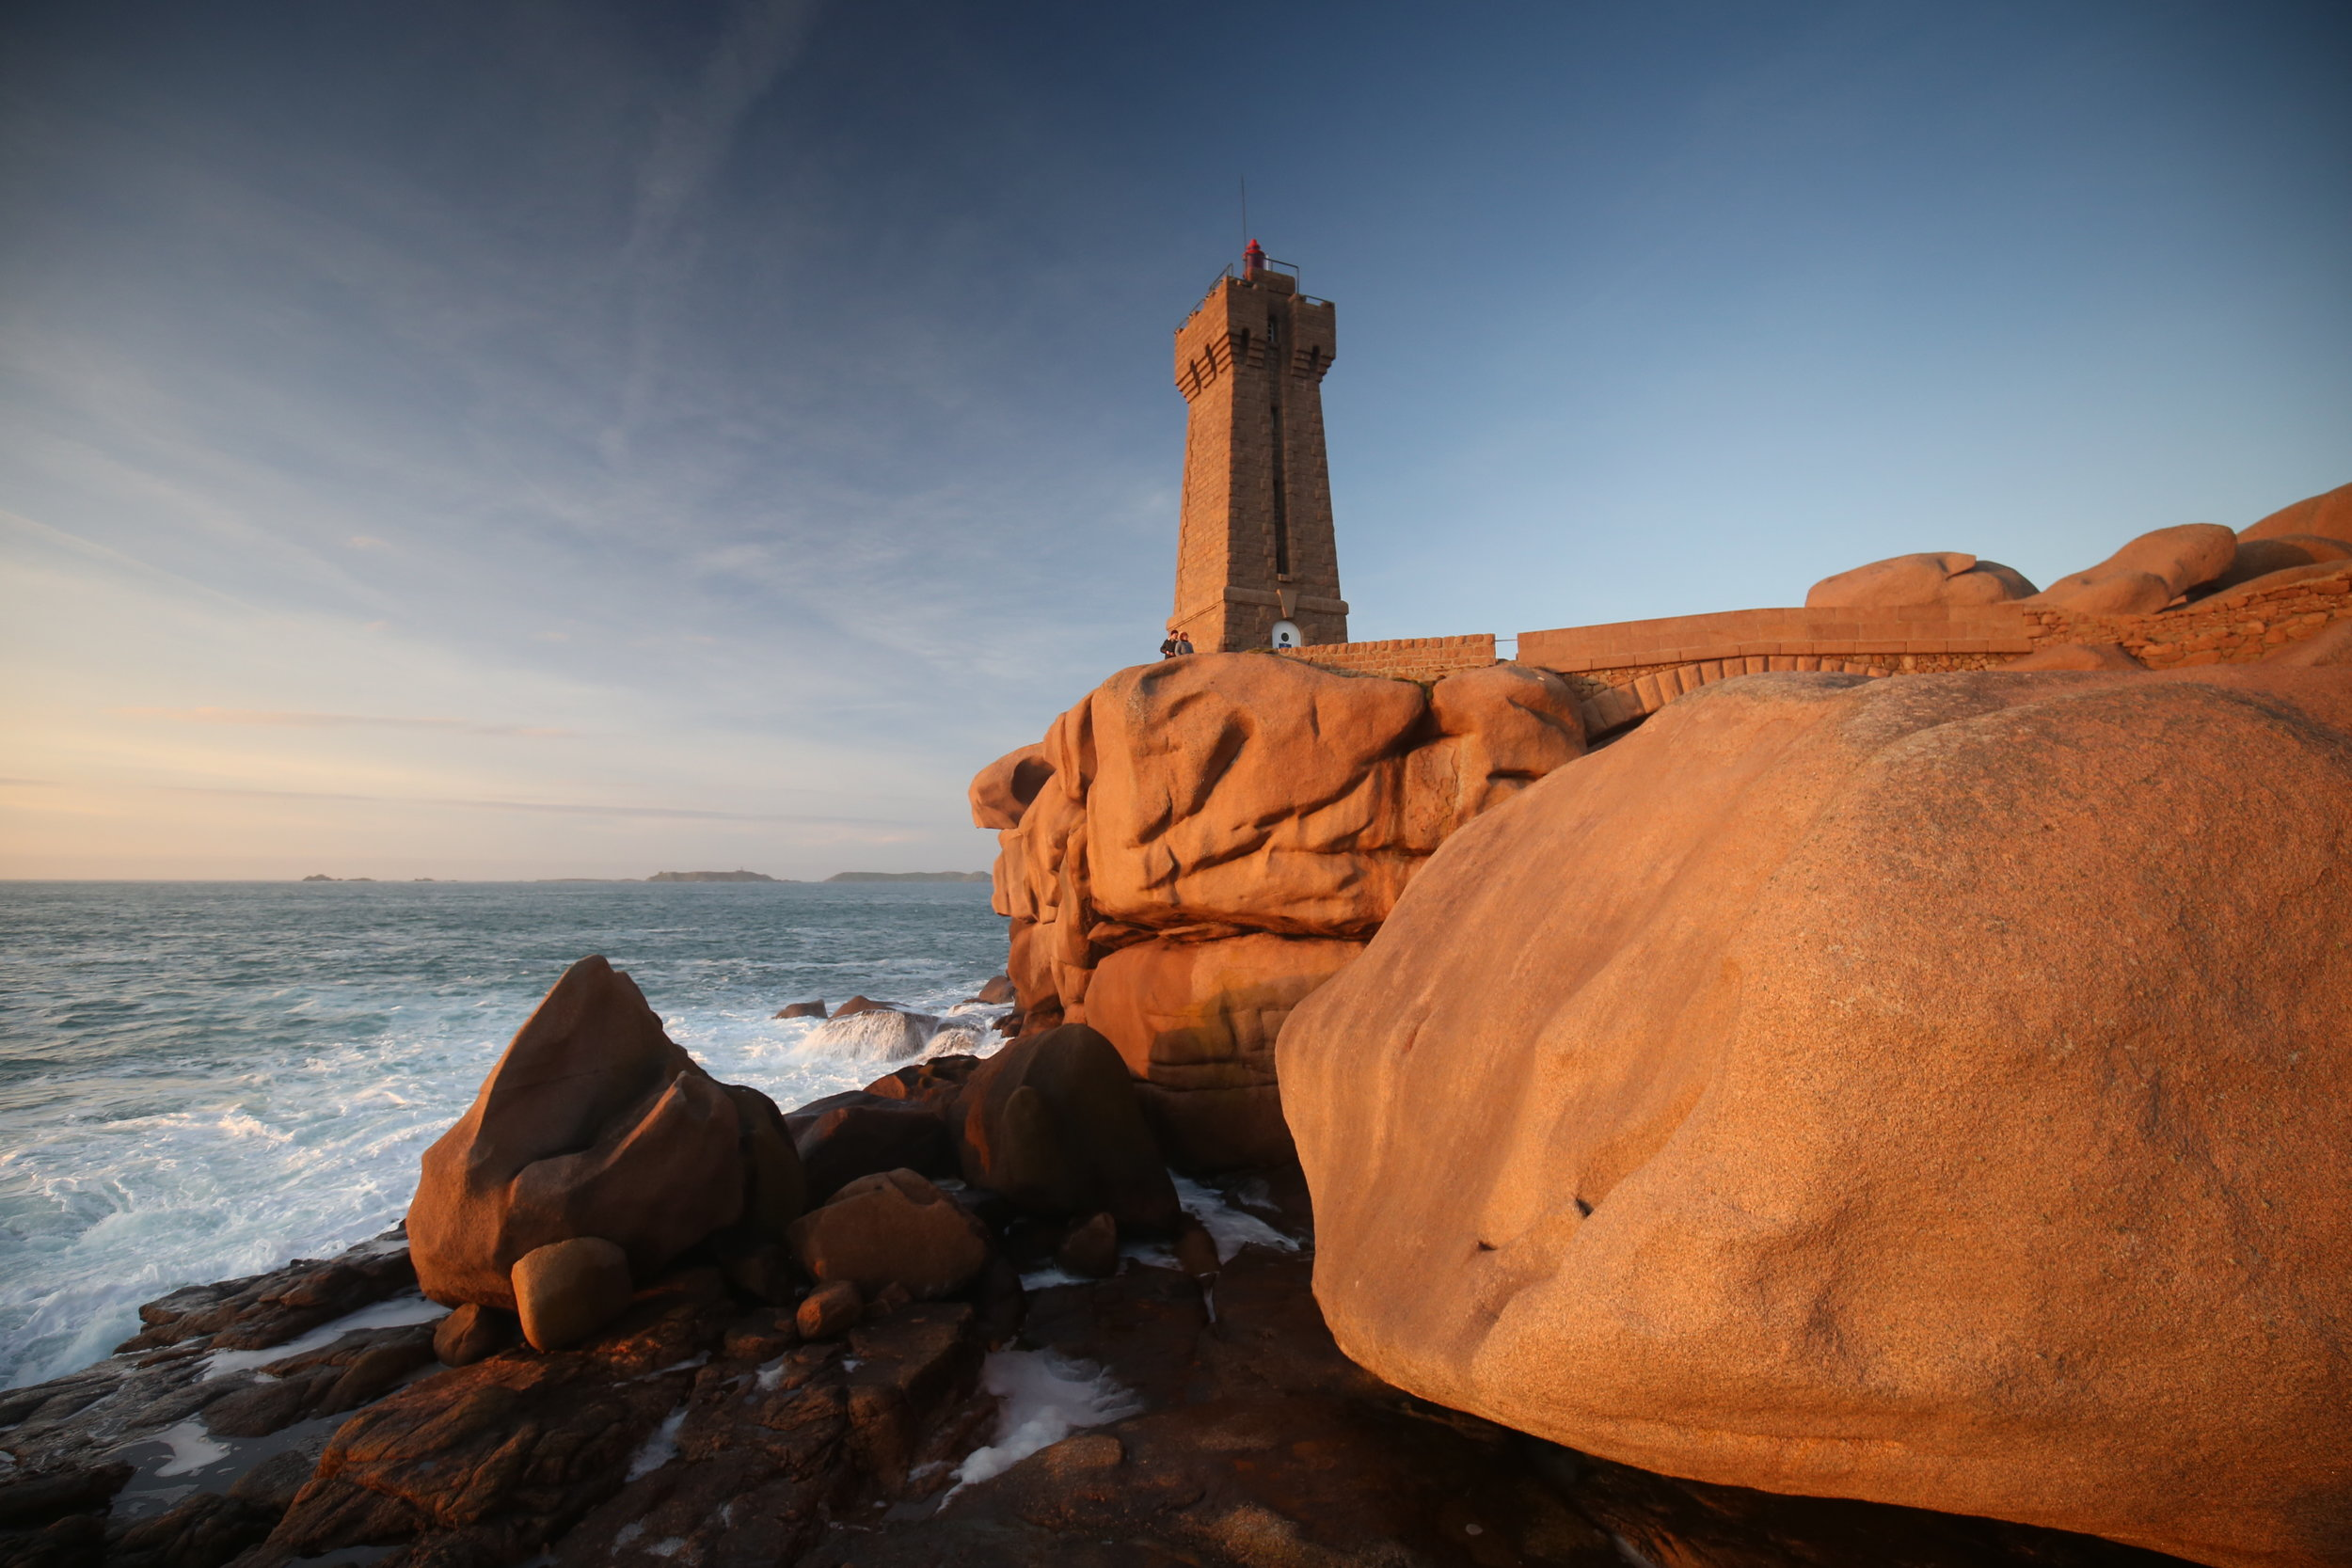 Ploumanach lighthouse made of rose granite stone, on the coast of Brittany, France.